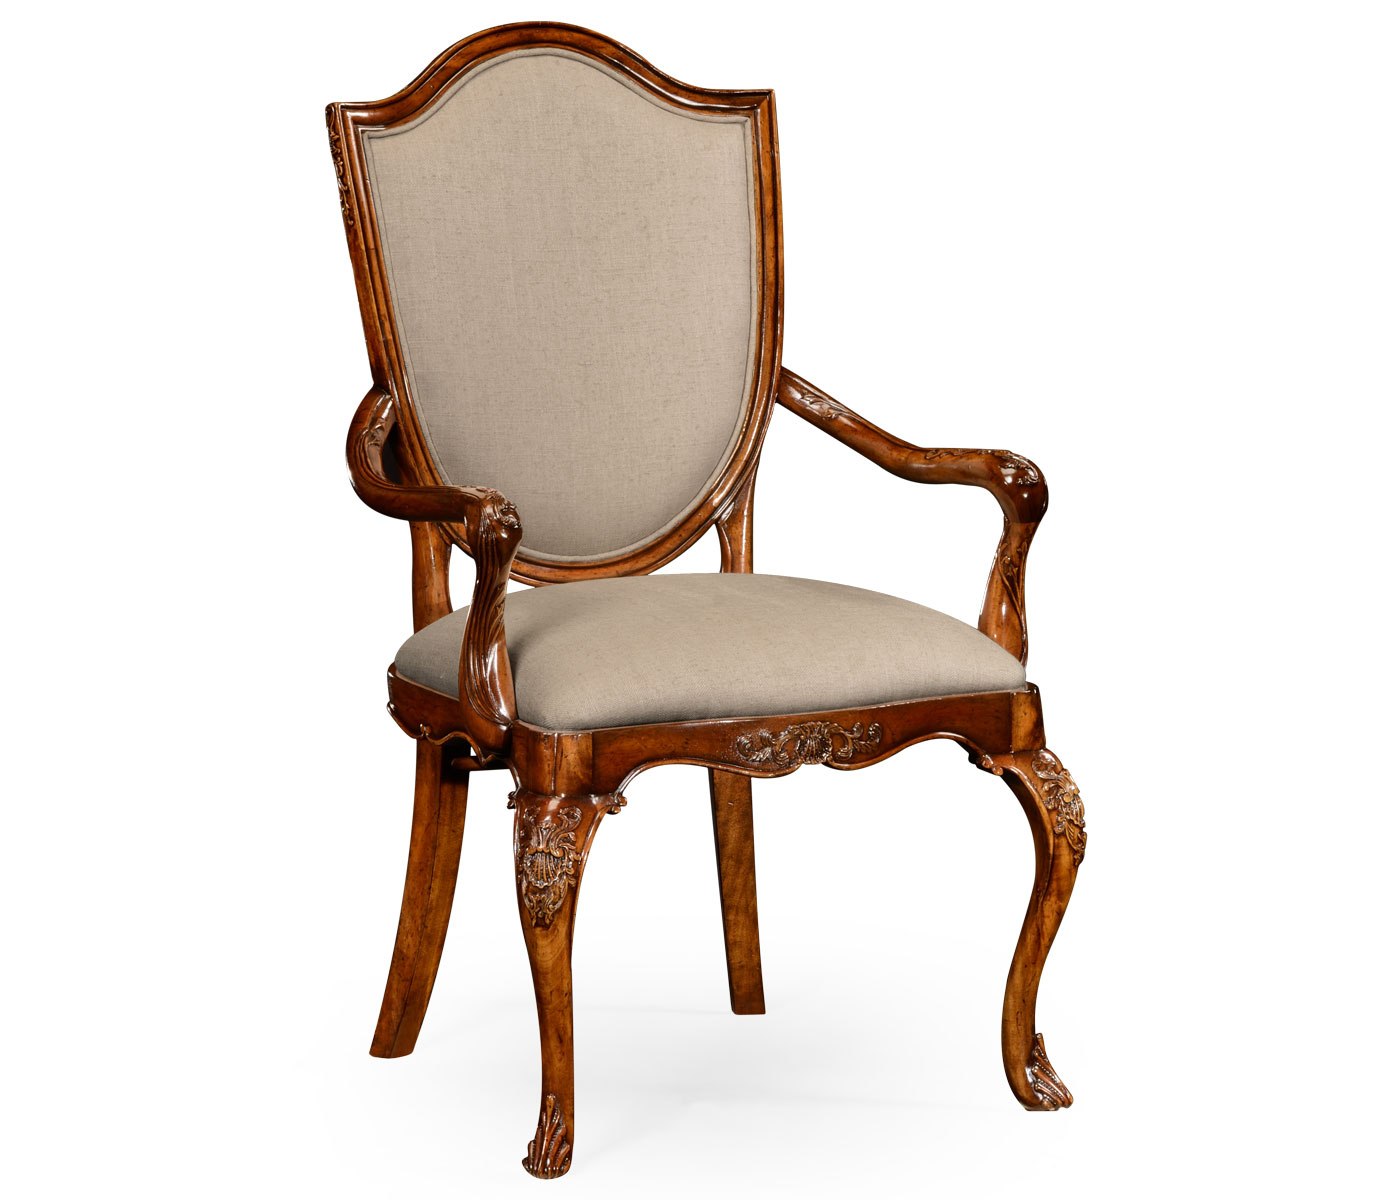 Upholstered Accent Chairs With Arms Upholstered Shield Back Chair Arm